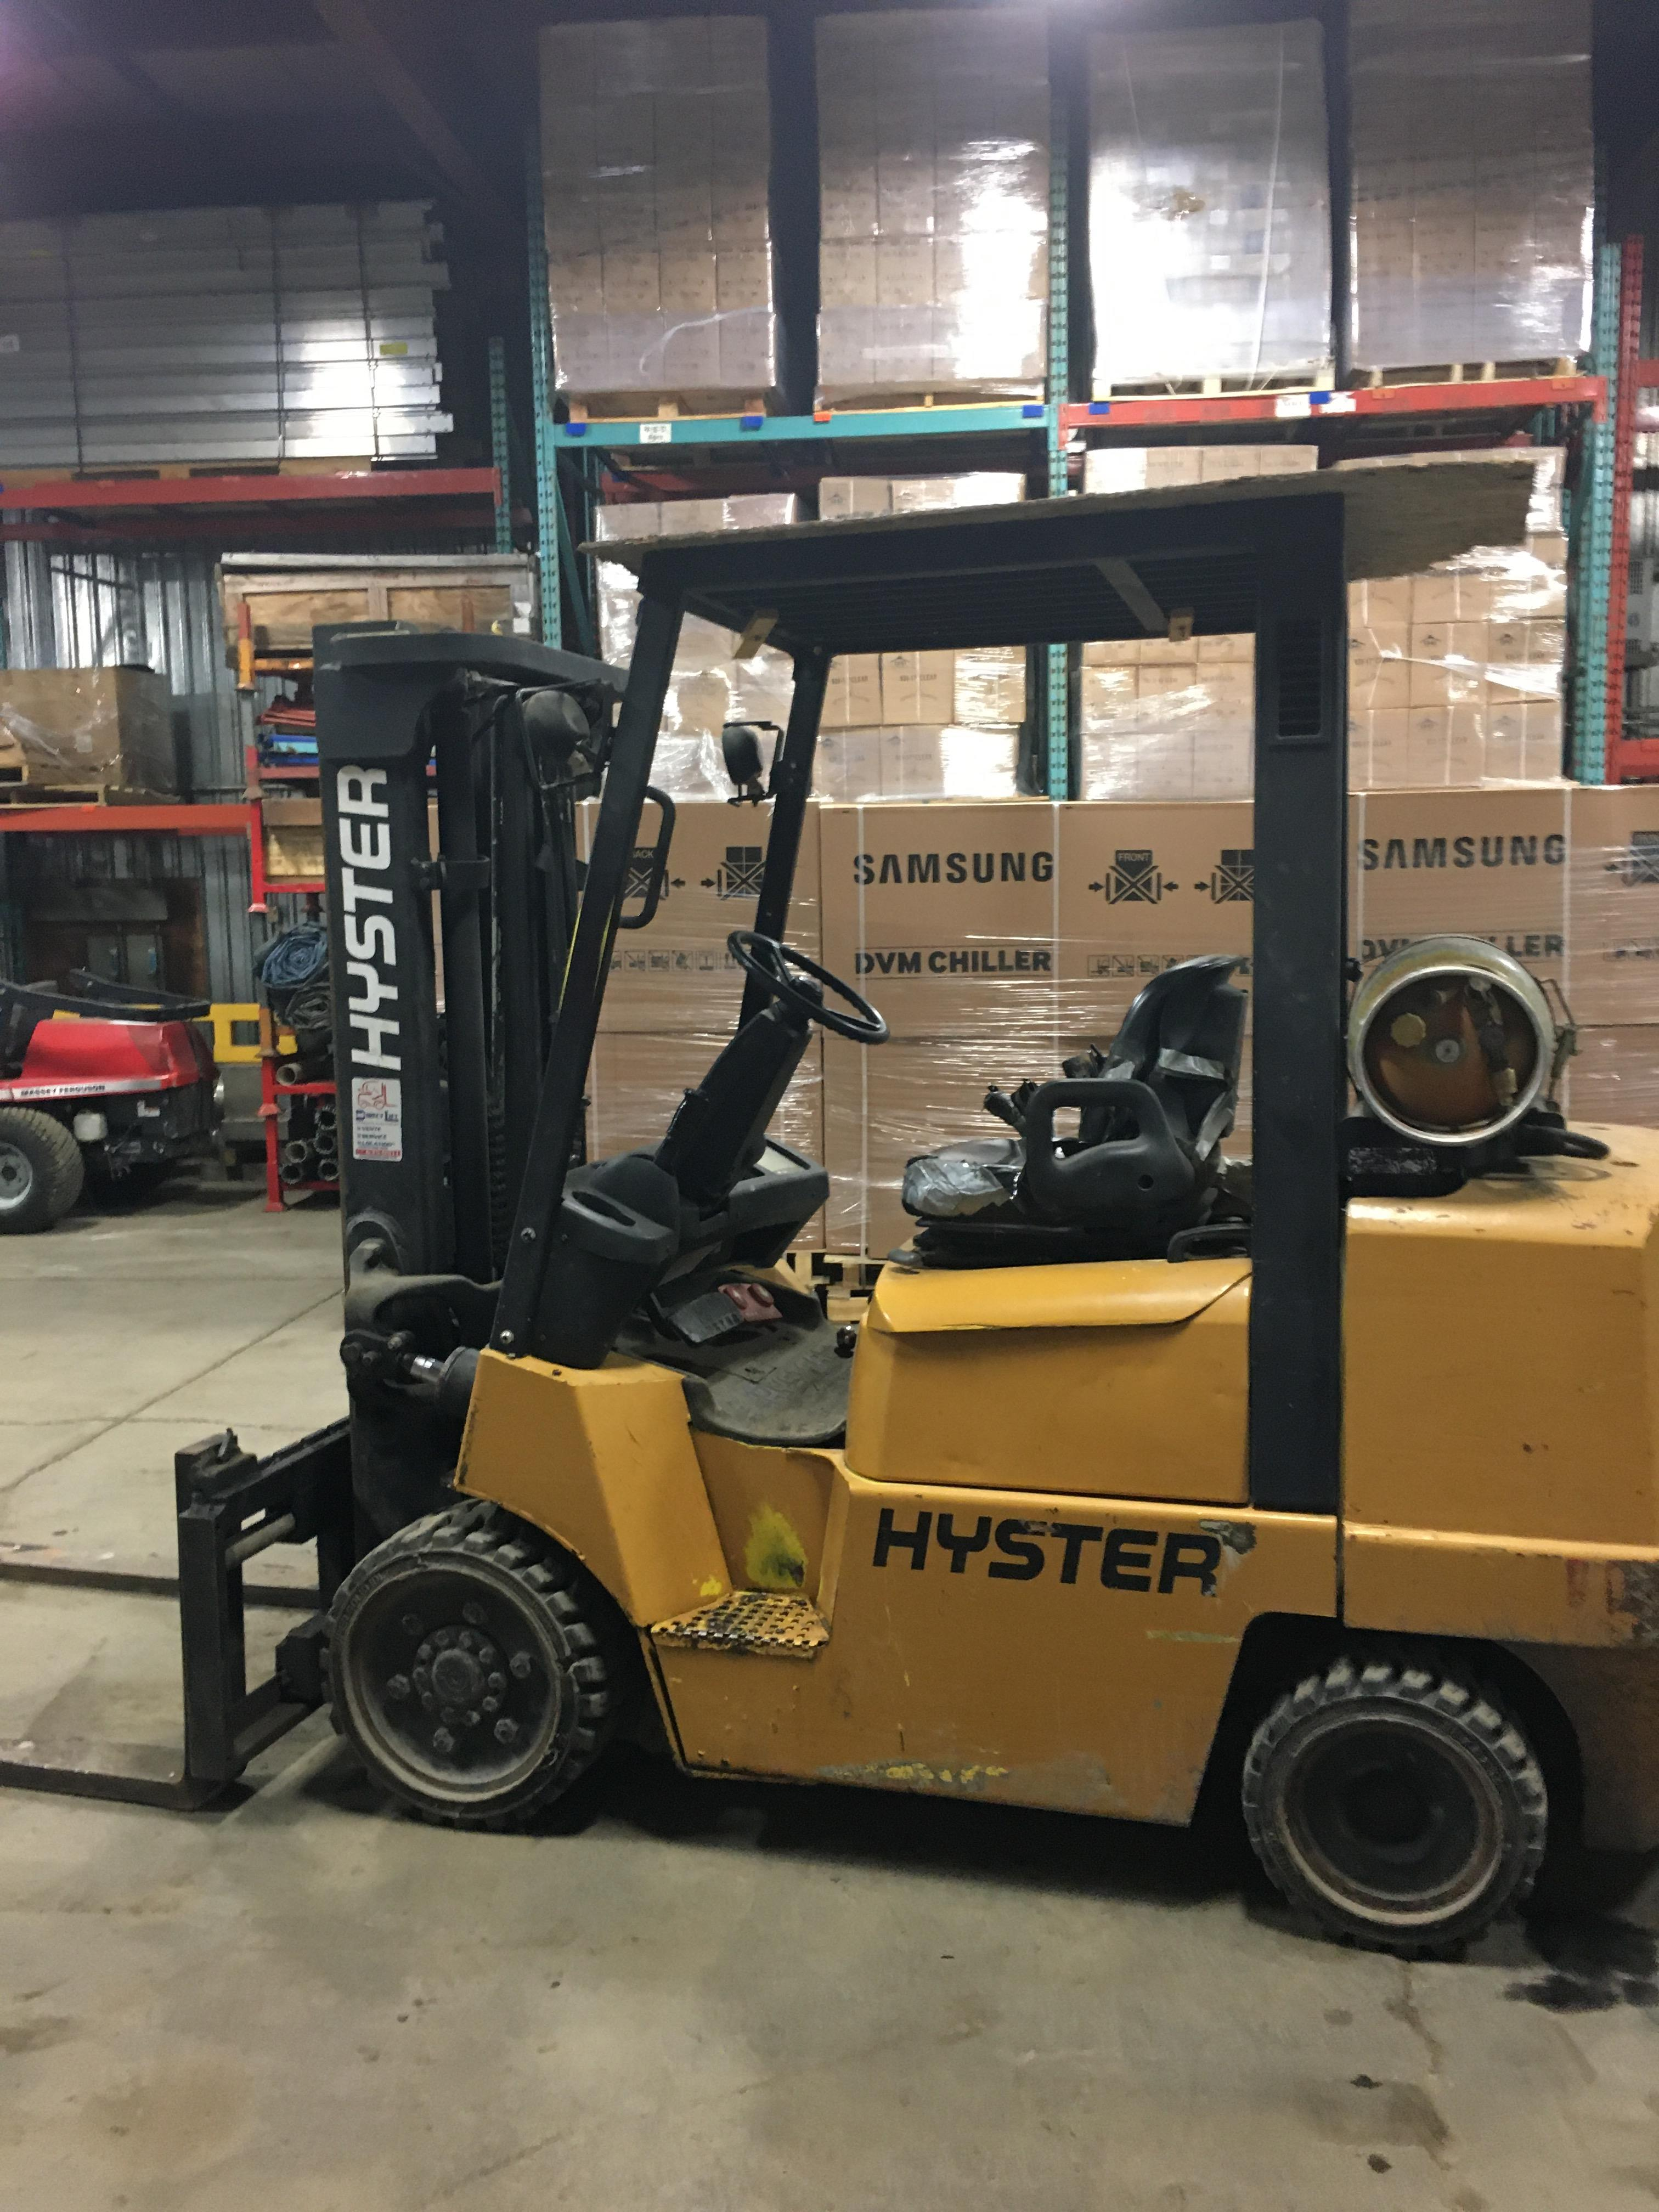 HYSTER PROPANE FORKLIFT, 8000 LBS CAP. (SIDESHIFT NOT FUNCTIONAL, NEEDS A REEL AND 2 HOSES) - Image 4 of 4